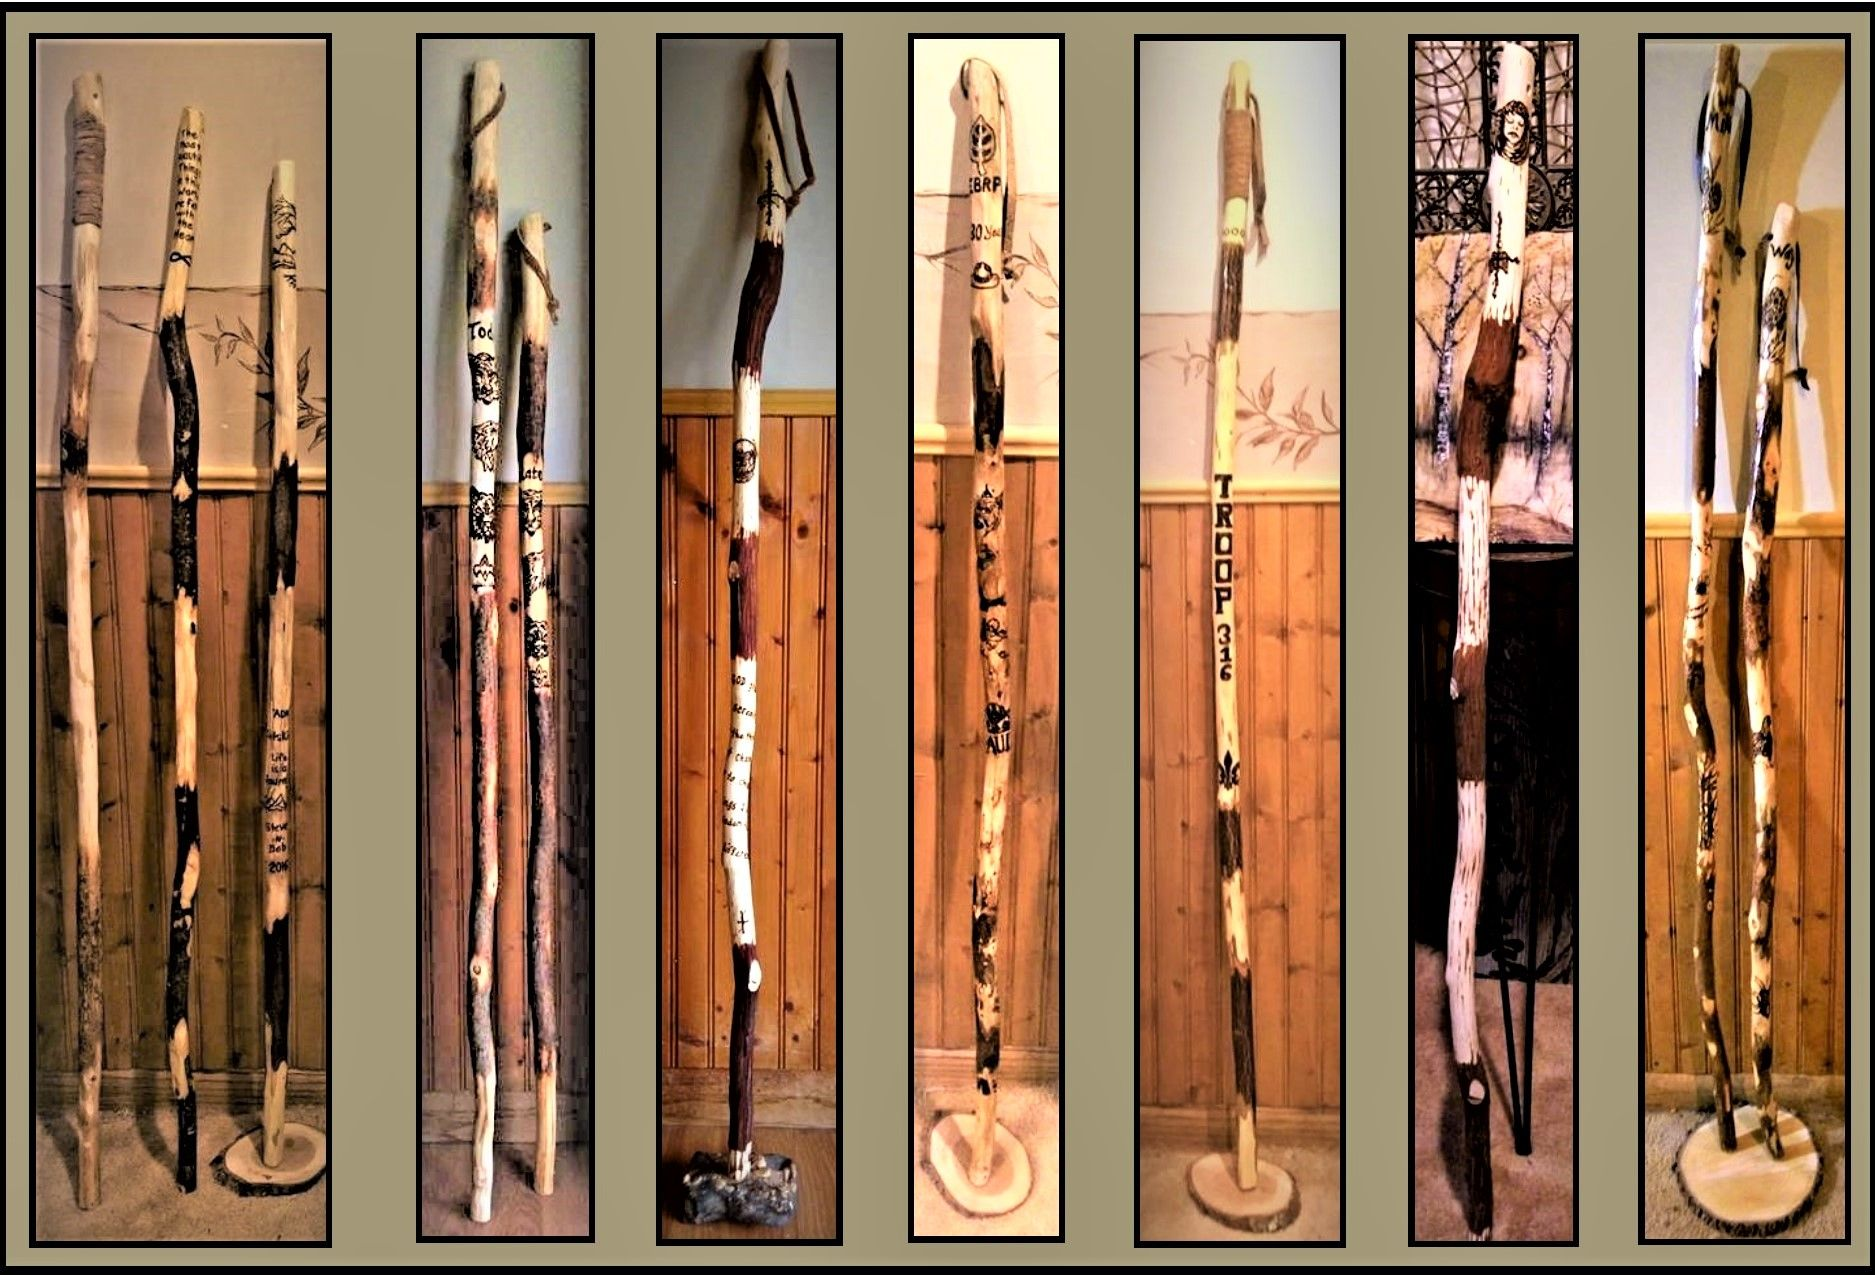 Buy A Custom Made Hiking Stick Wood Anniversary Gift For